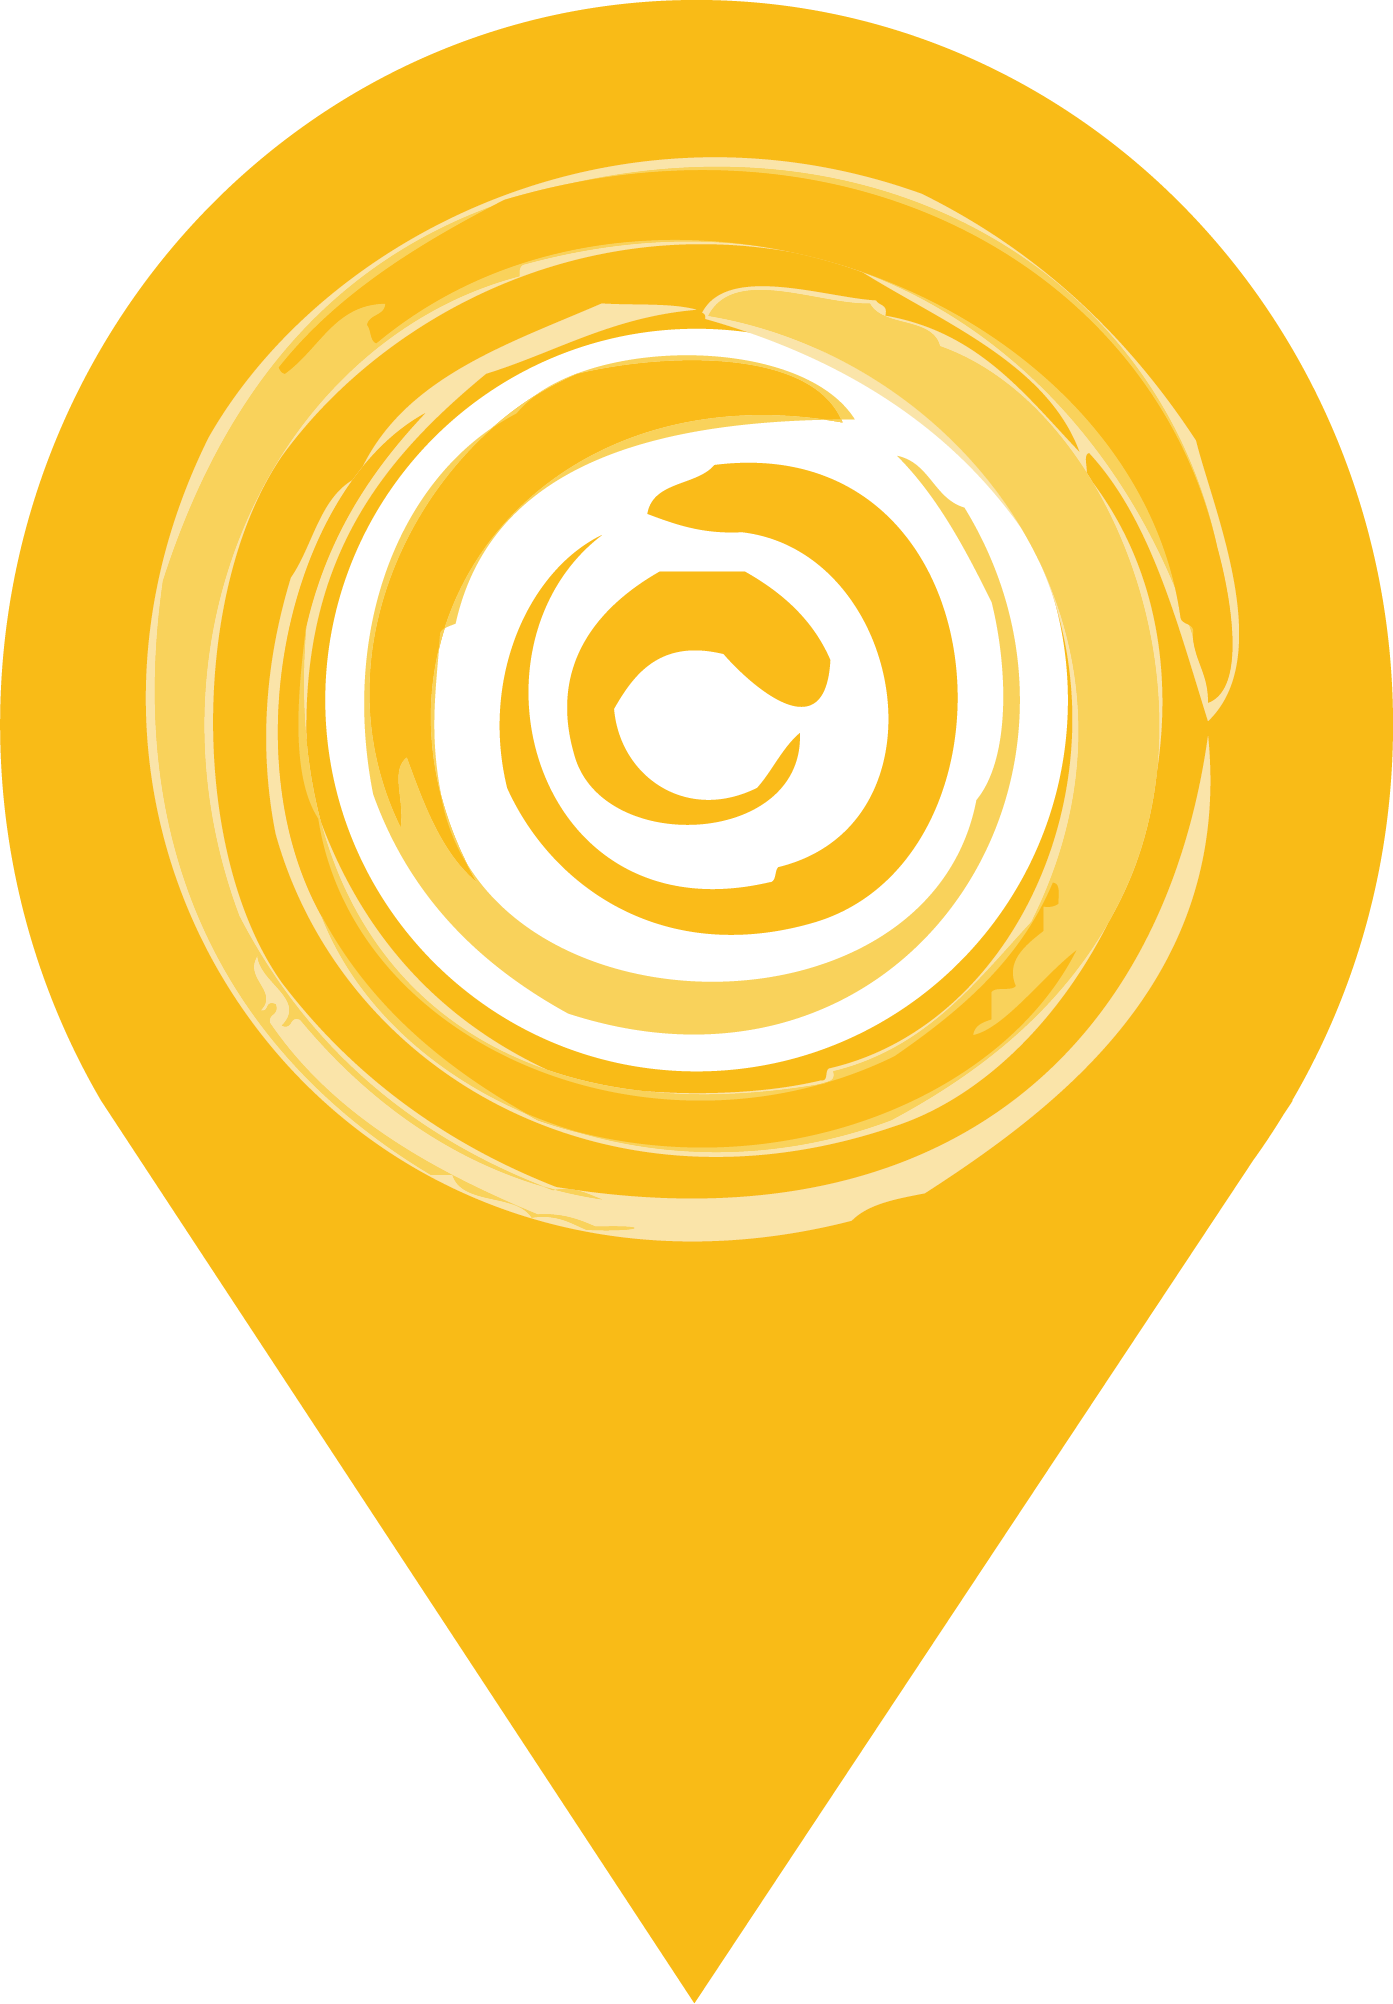 Location marker with West Haven Park Favicon, Swirly Sun Circle Logo